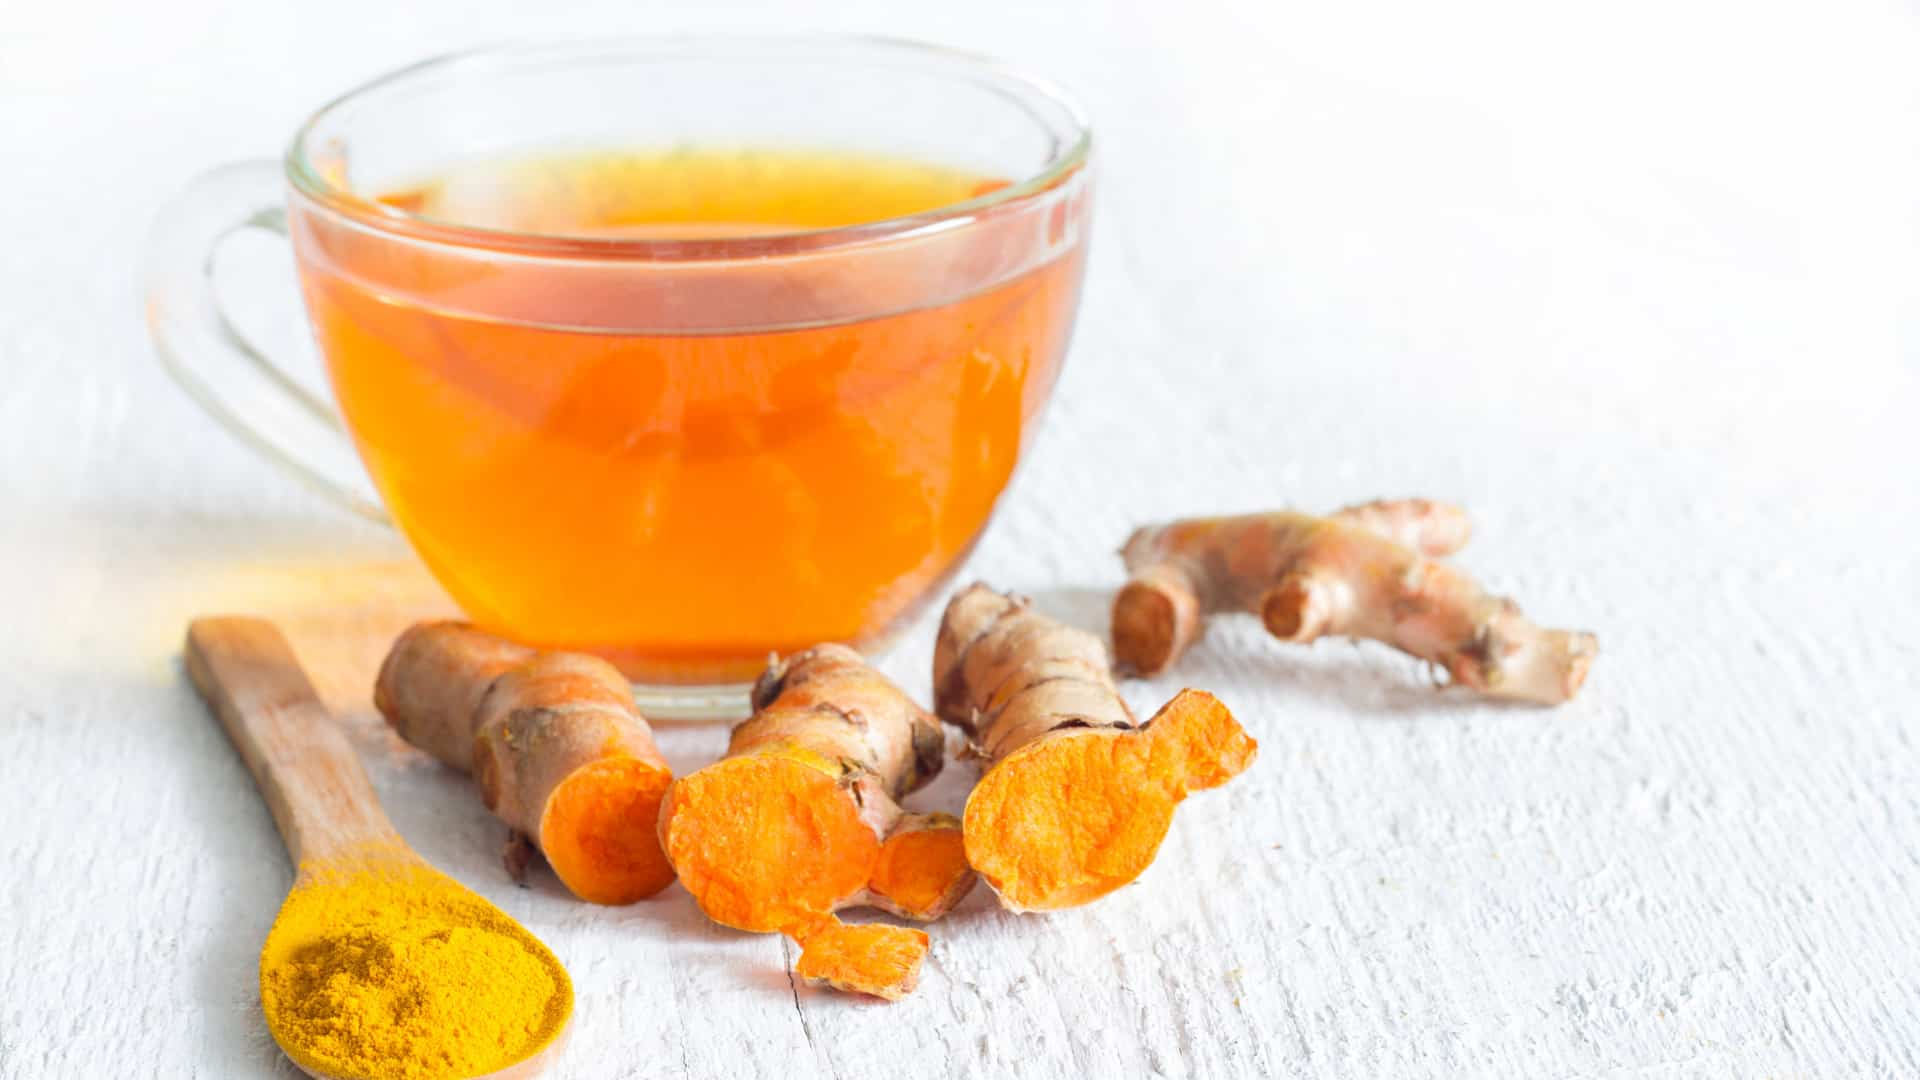 Turmeric can be used to make a surprisingly tasty tea.